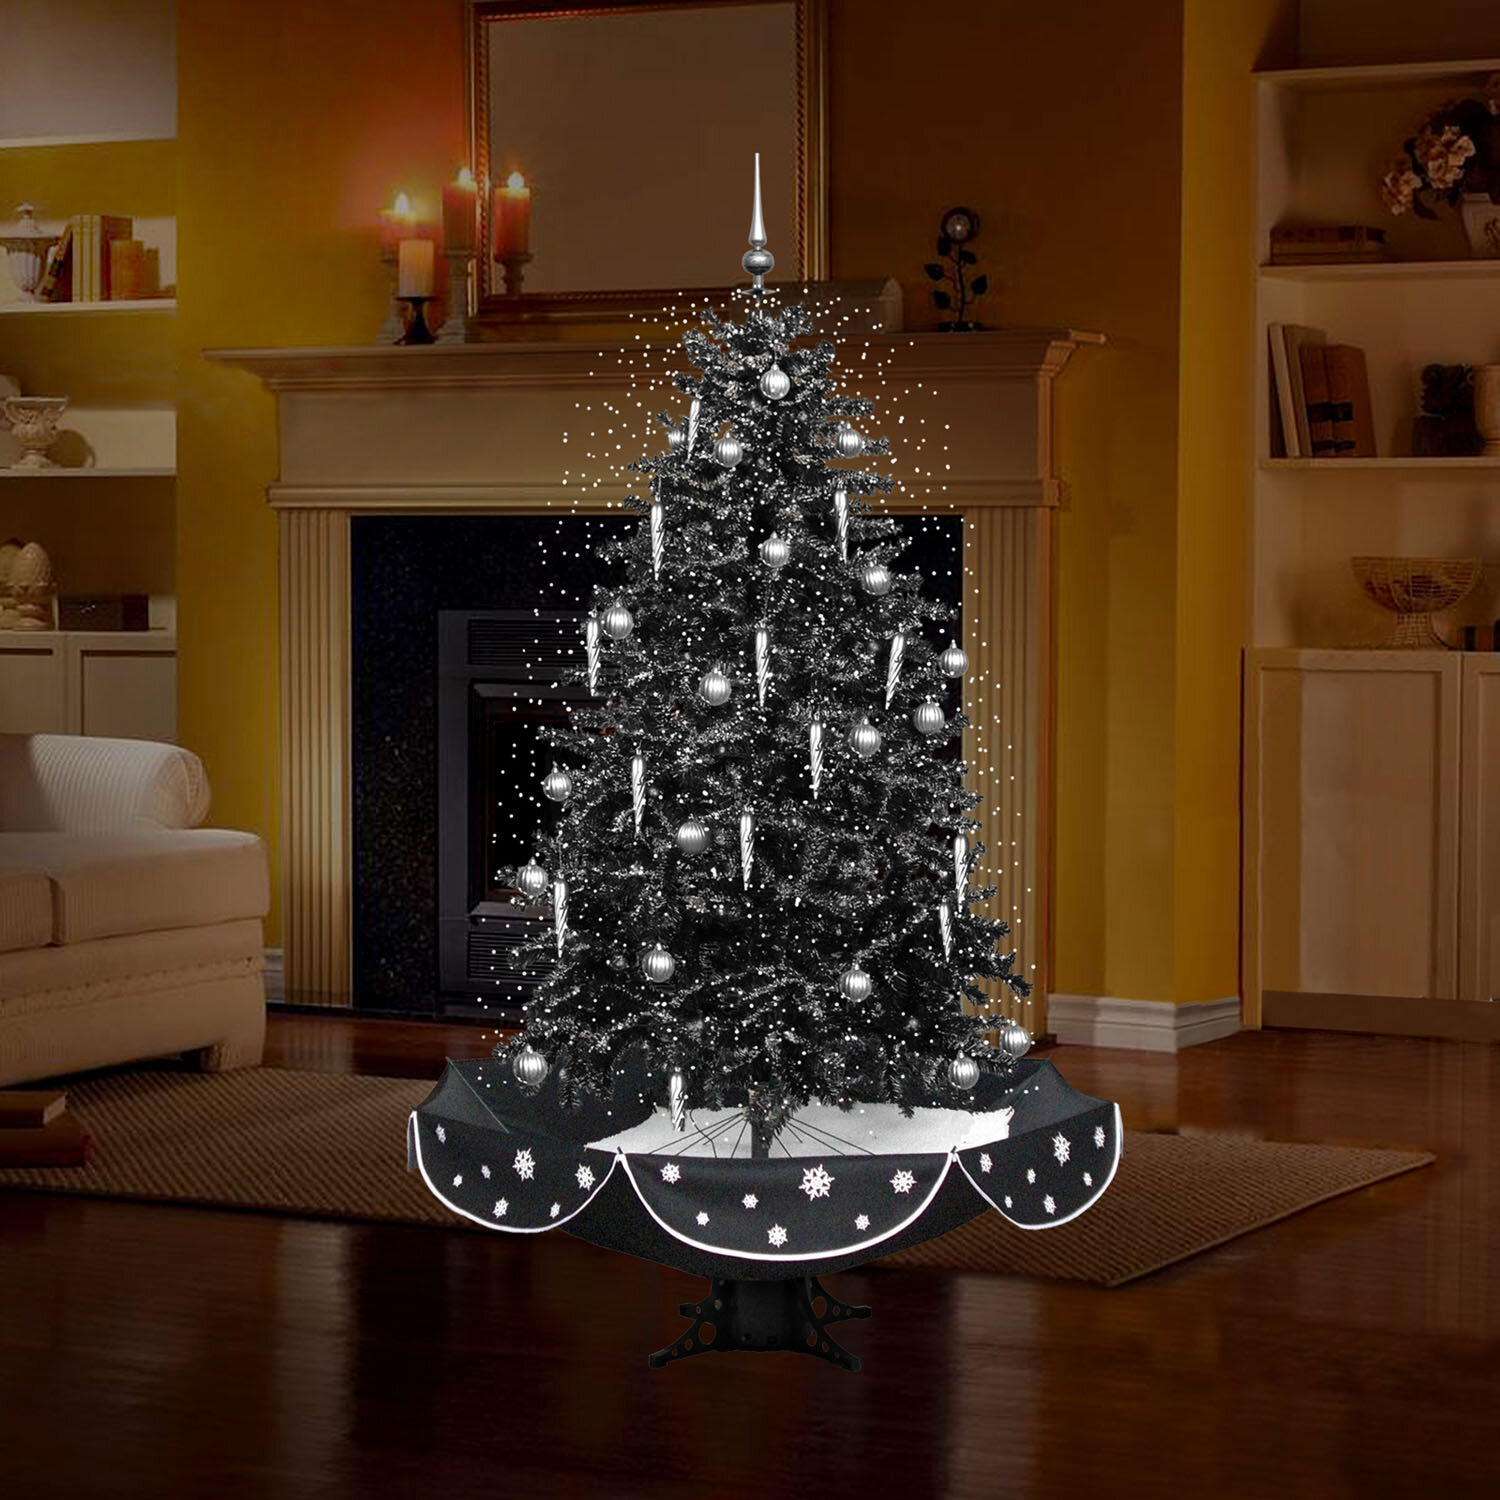 The Holiday Aisle 6 3 Snowing Musical Black Artificial Christmas Tree With 80 Clear White Lights Reviews Wayfair